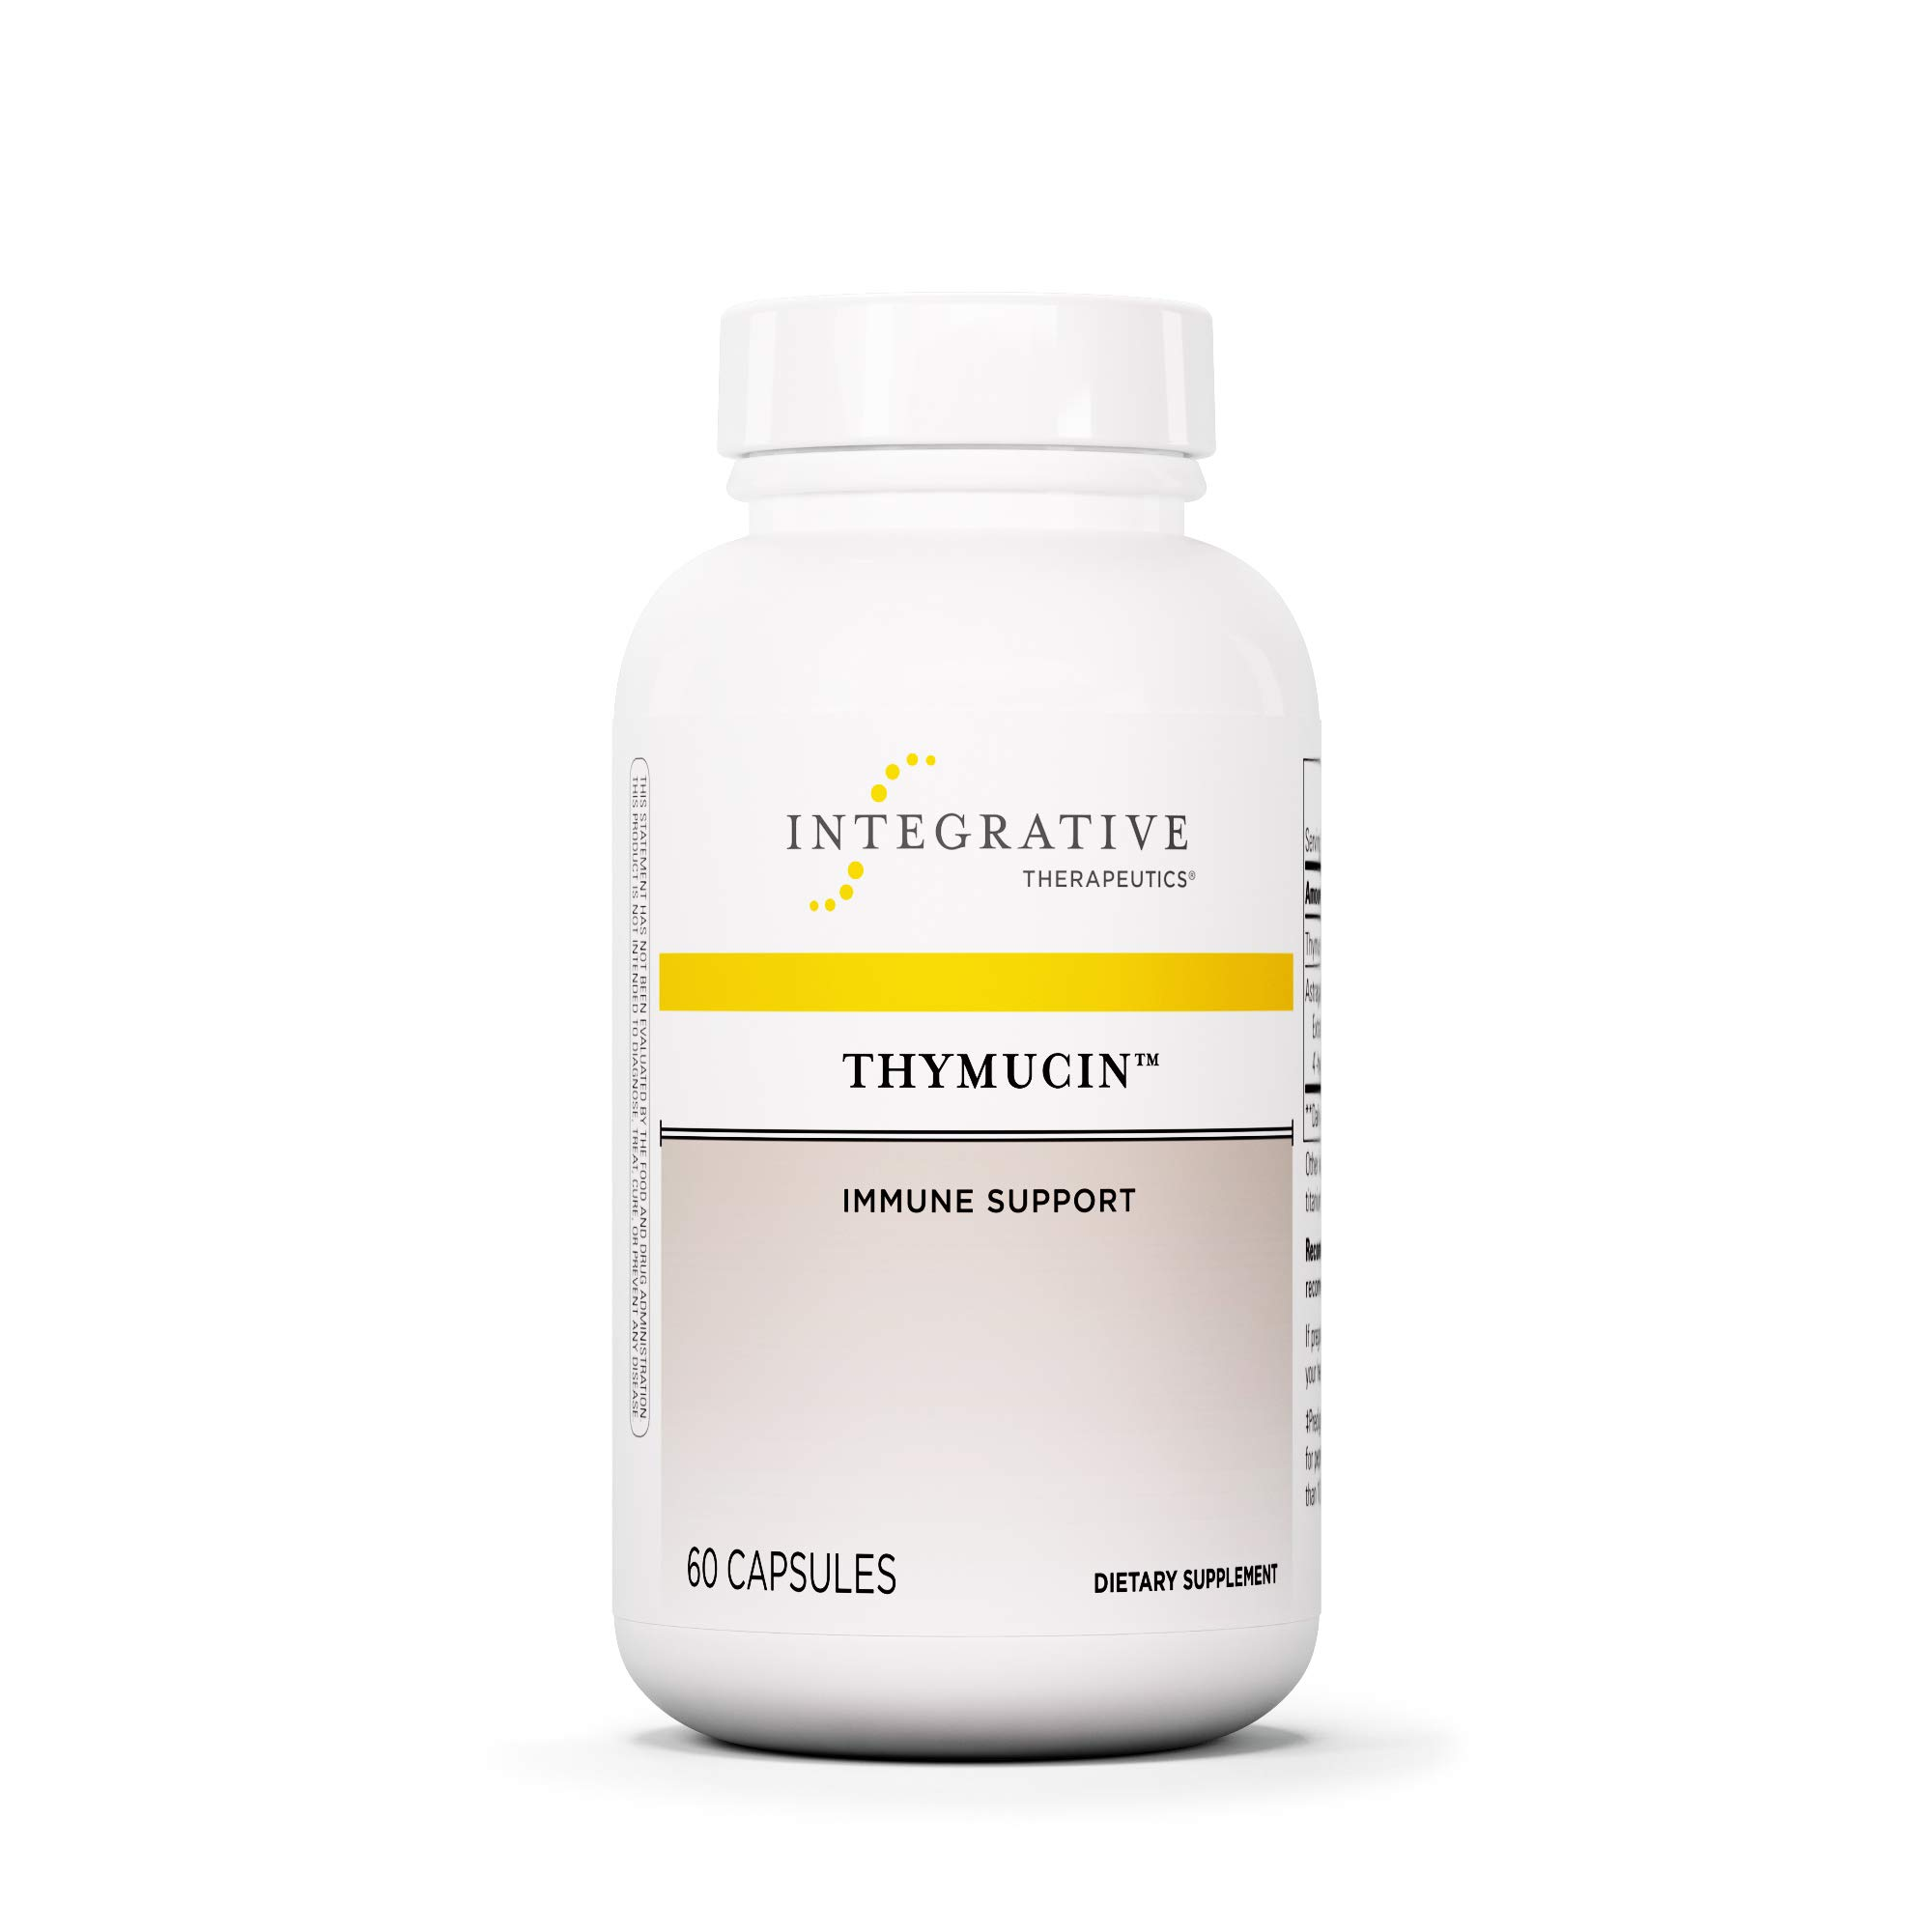 Integrative Therapeutics - Thymucin - Thymus and Immune System Support - 60 Capsules